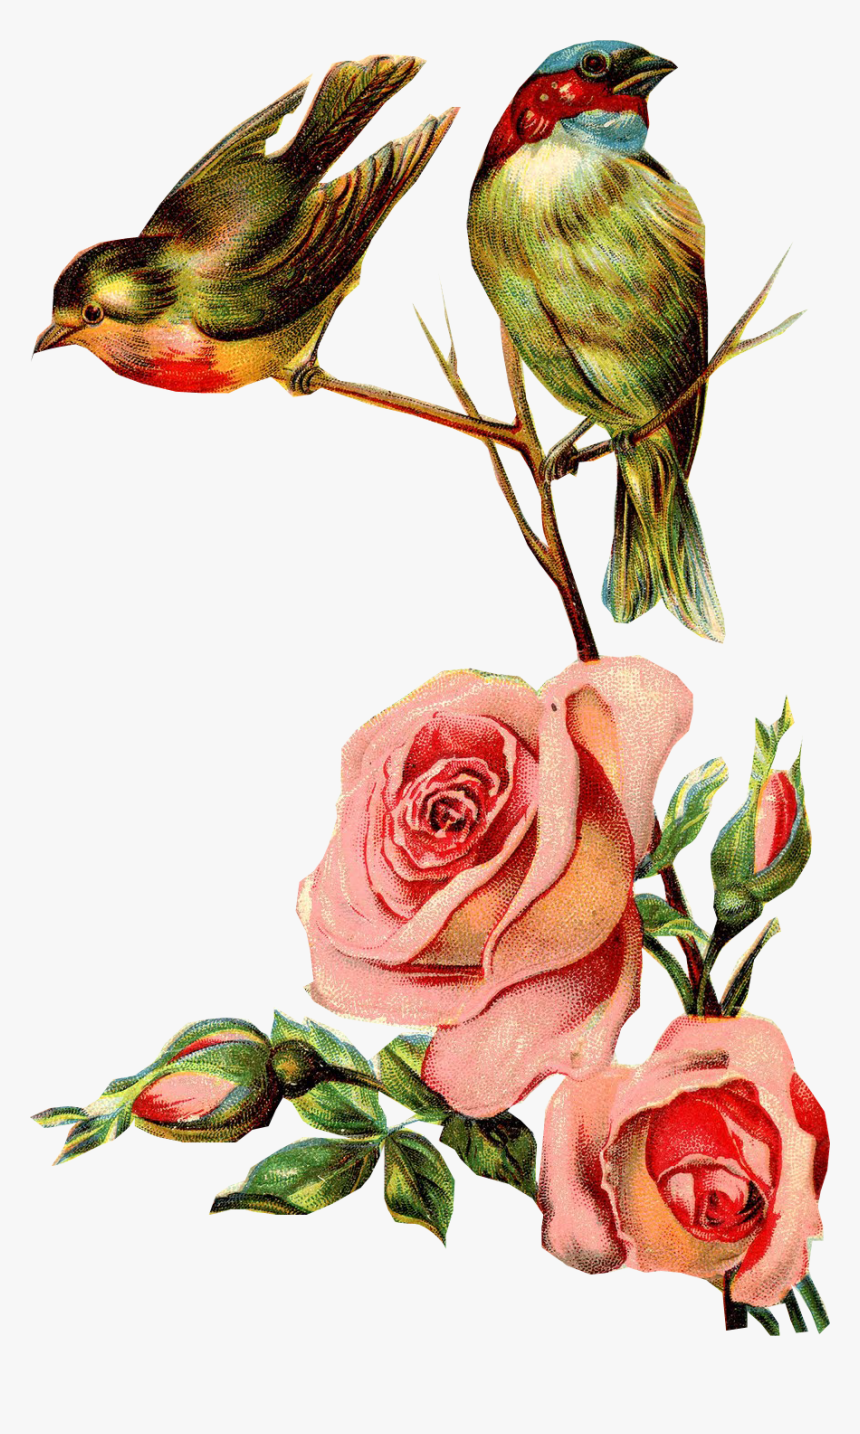 Flores Y Pajaritos Vintage Png, Transparent Png, Free Download